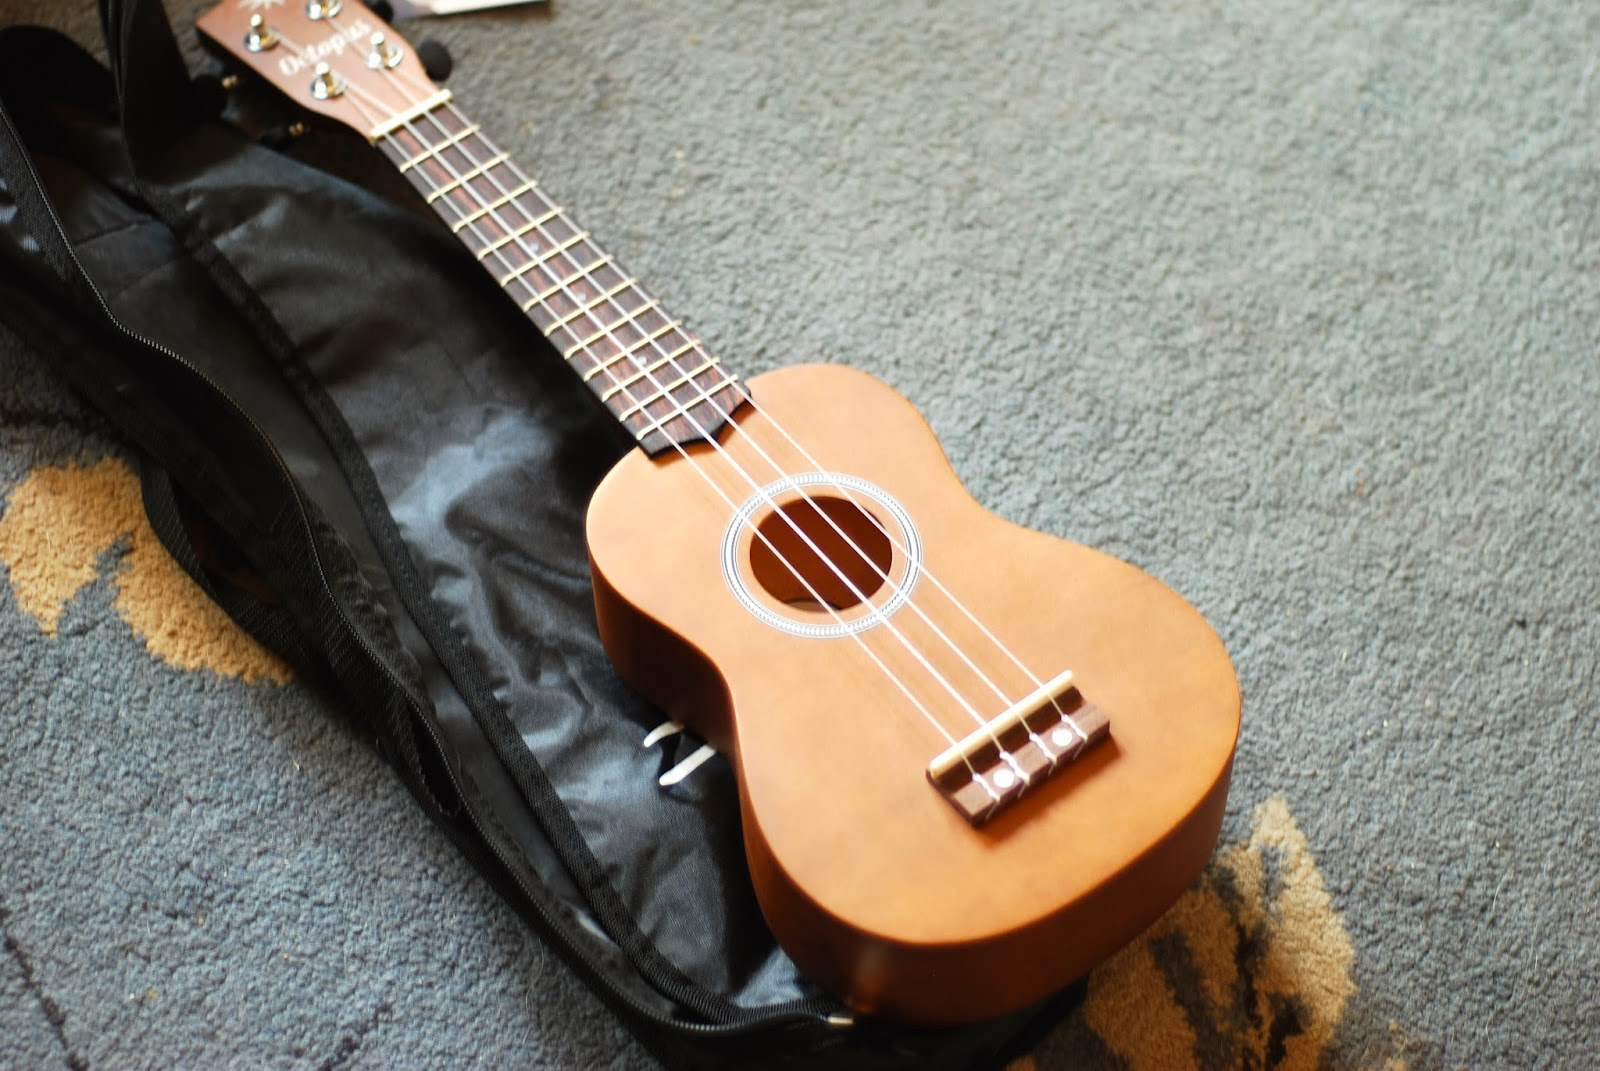 UKULELE REVIEWS - gotaukulele.com